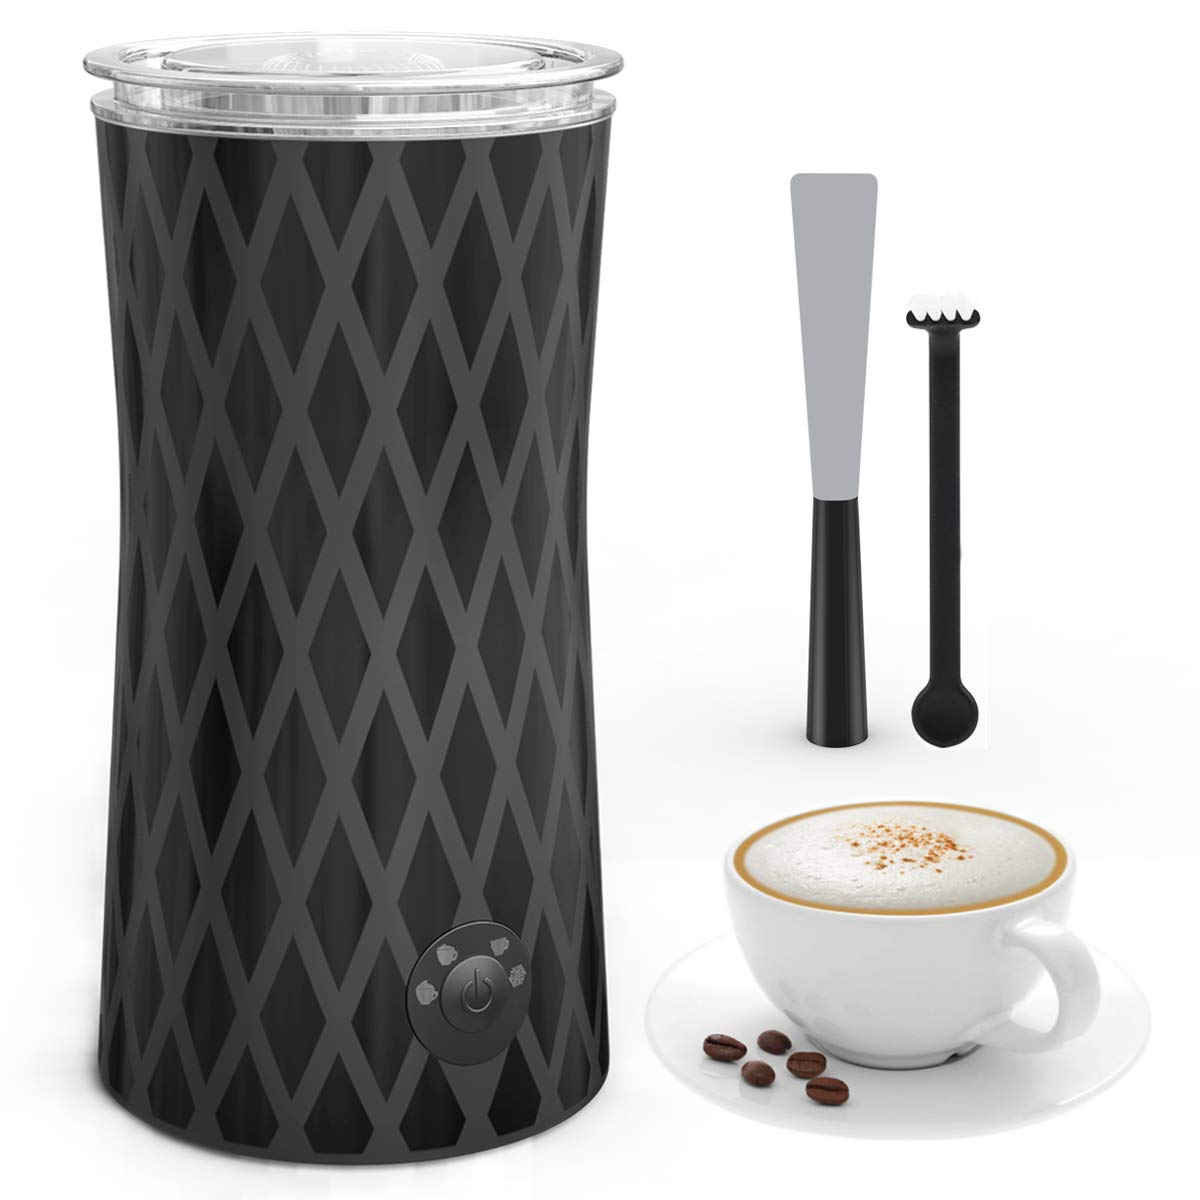 Automatic Milk Frother and Warmer, morpilot Electric Milk Foamer with Silent Operation, 4 Modes, Heats Milk | Froths Warm & Cold Foam for Coffee, Hot Chocolate, Cappuccino, Latte (400W, 250ML)